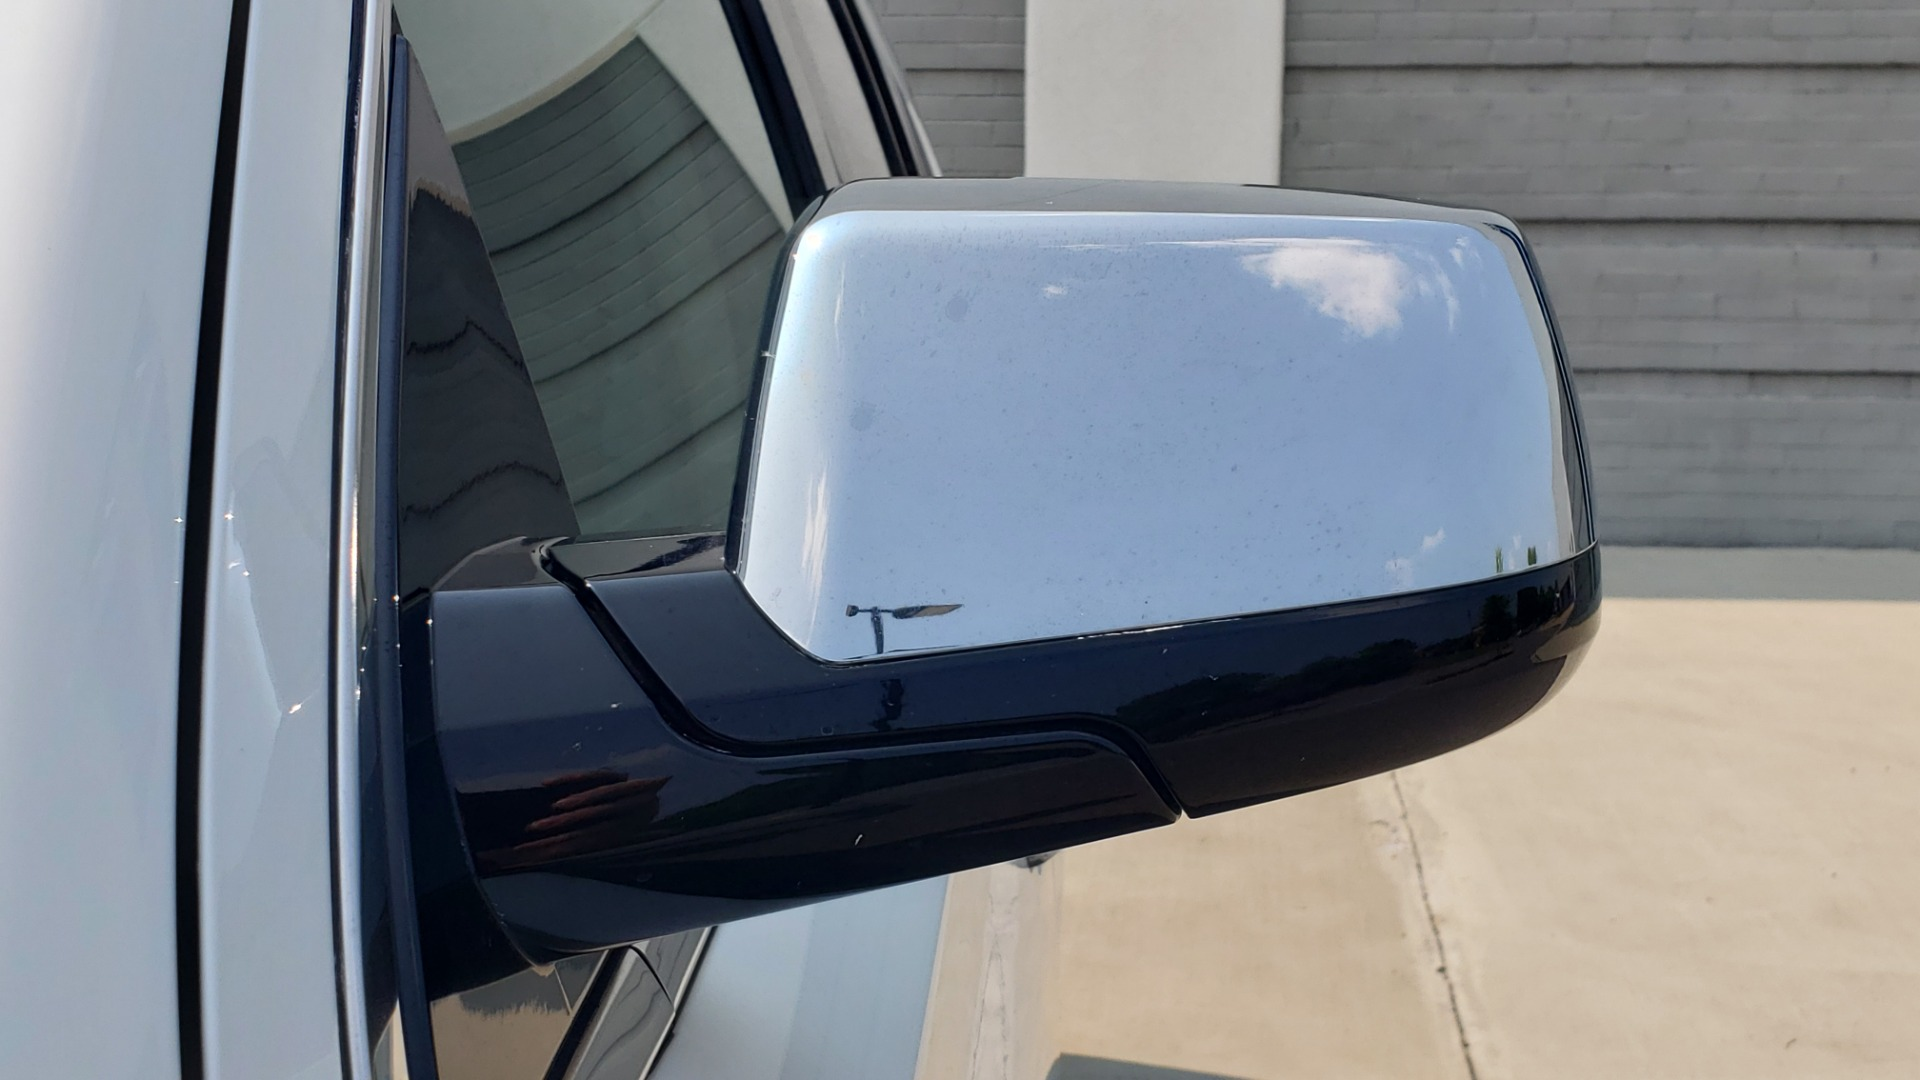 Used 2018 Chevrolet TAHOE PREMIER 4WD / NAV / SUNROOF / BOSE / 3-ROW / HUD / REARVIEW for sale $63,995 at Formula Imports in Charlotte NC 28227 29